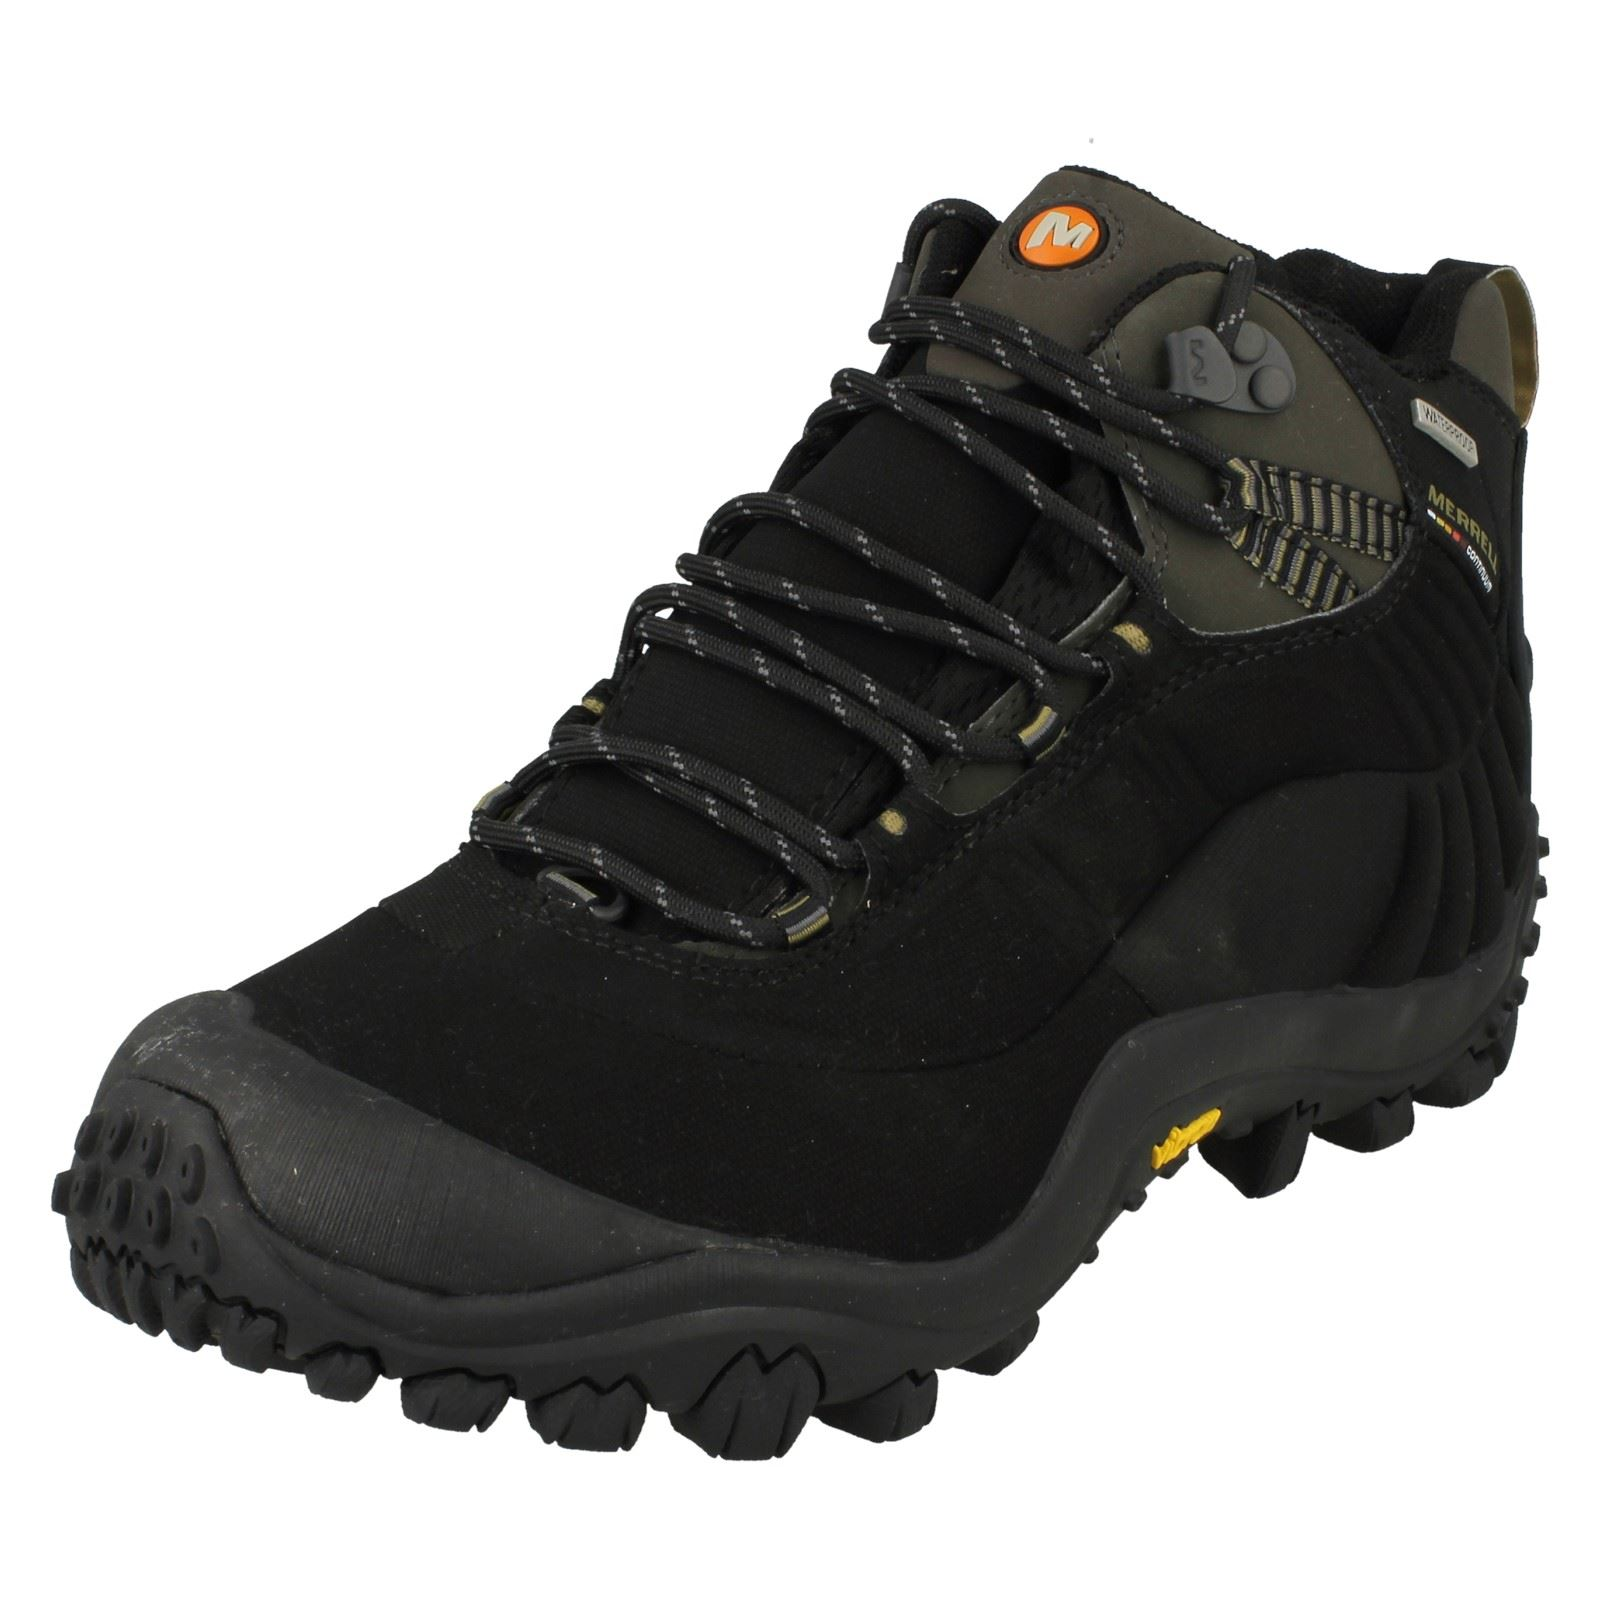 80b311f1af Details about Mens Merrell Casual Waterproof Lace Up Walking Boots  'Chameleon'